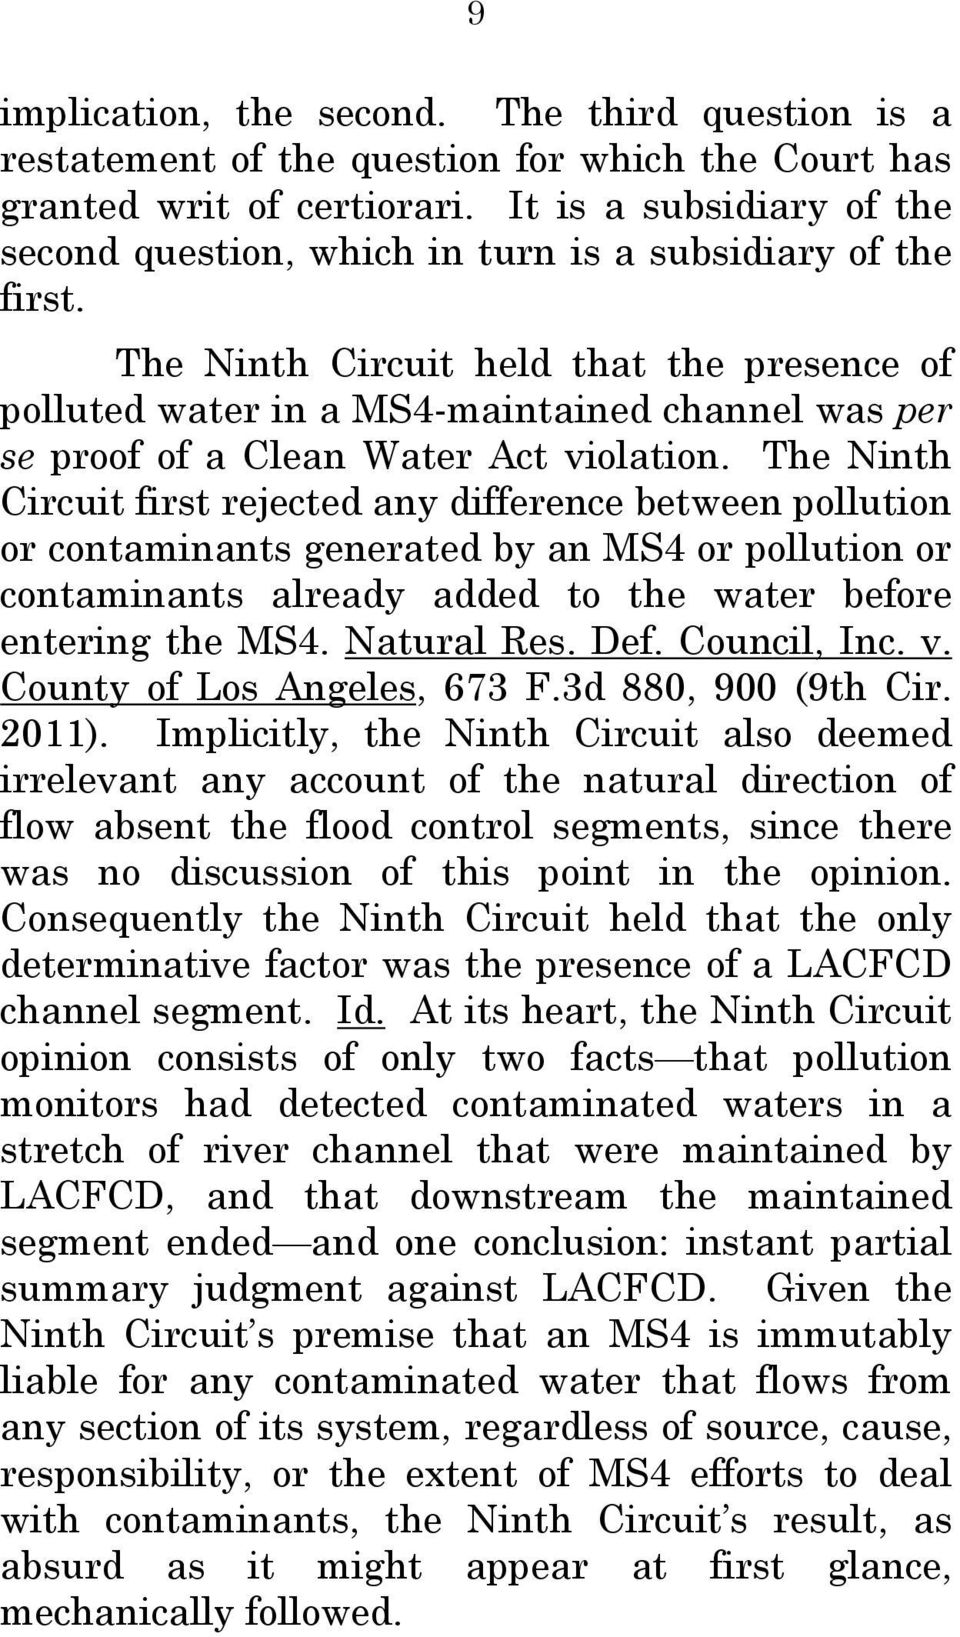 The Ninth Circuit held that the presence of polluted water in a MS4-maintained channel was per se proof of a Clean Water Act violation.